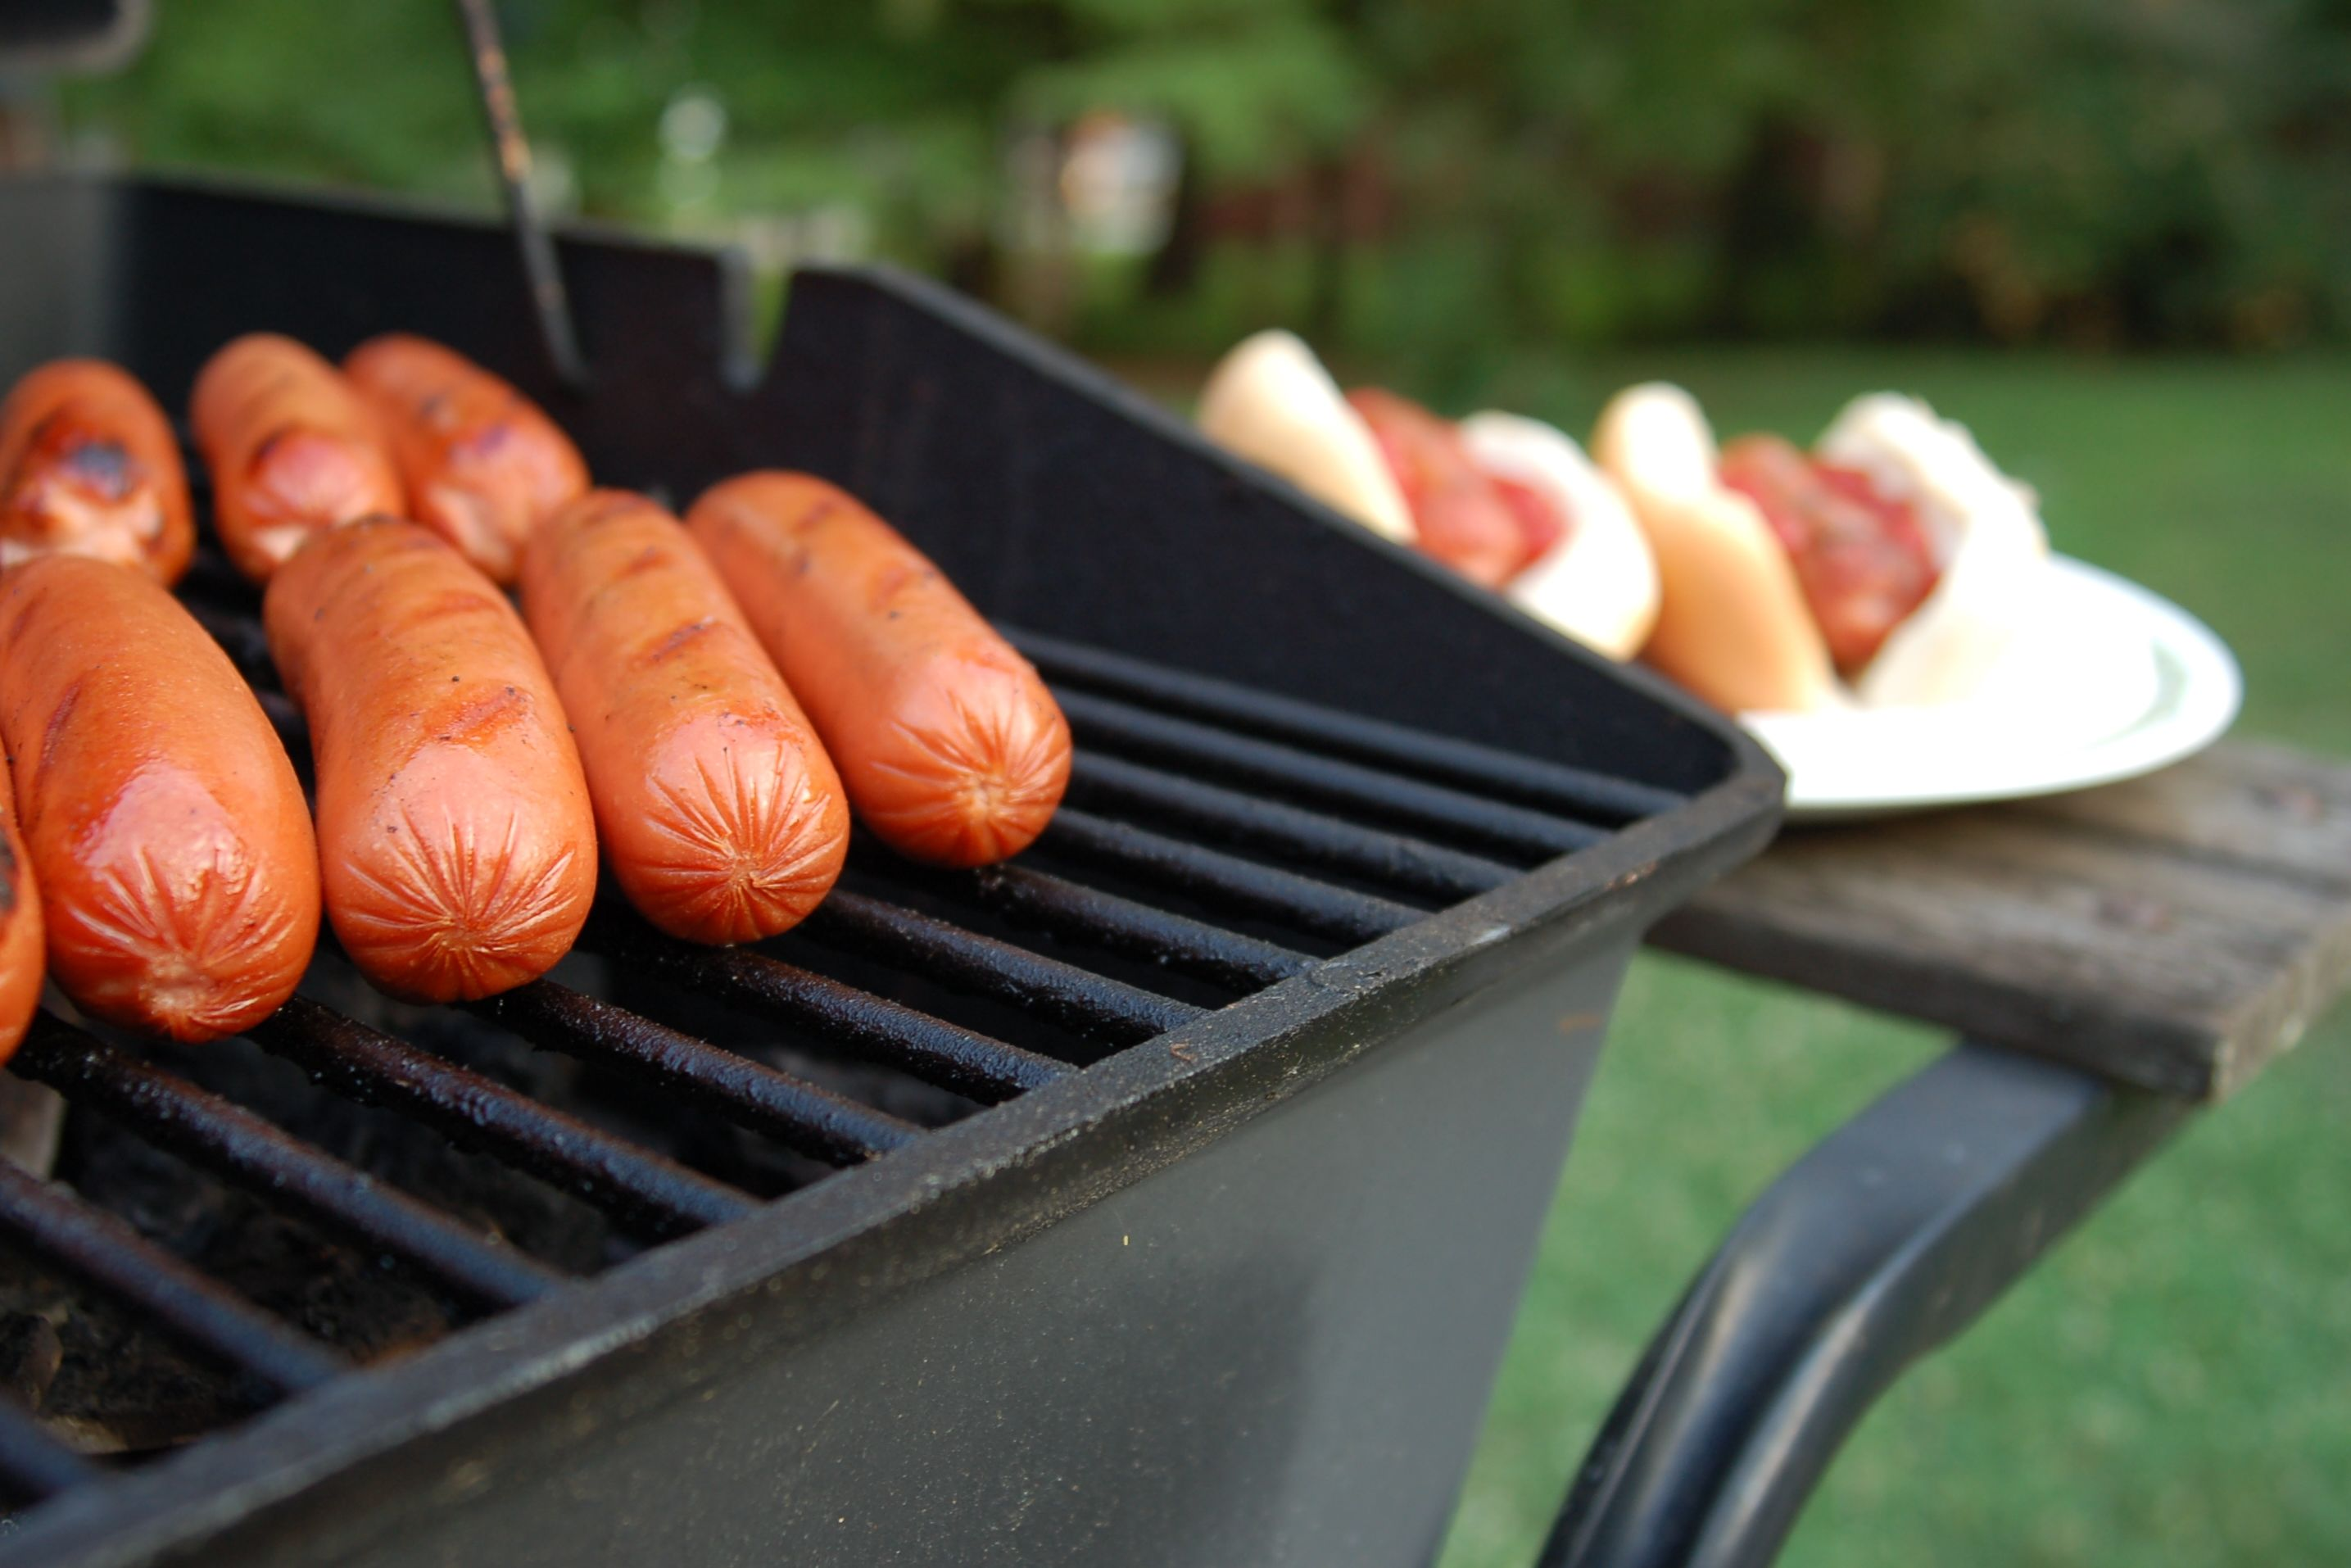 Why Hot Dogs and Hot Dog Buns Come in Different Amounts